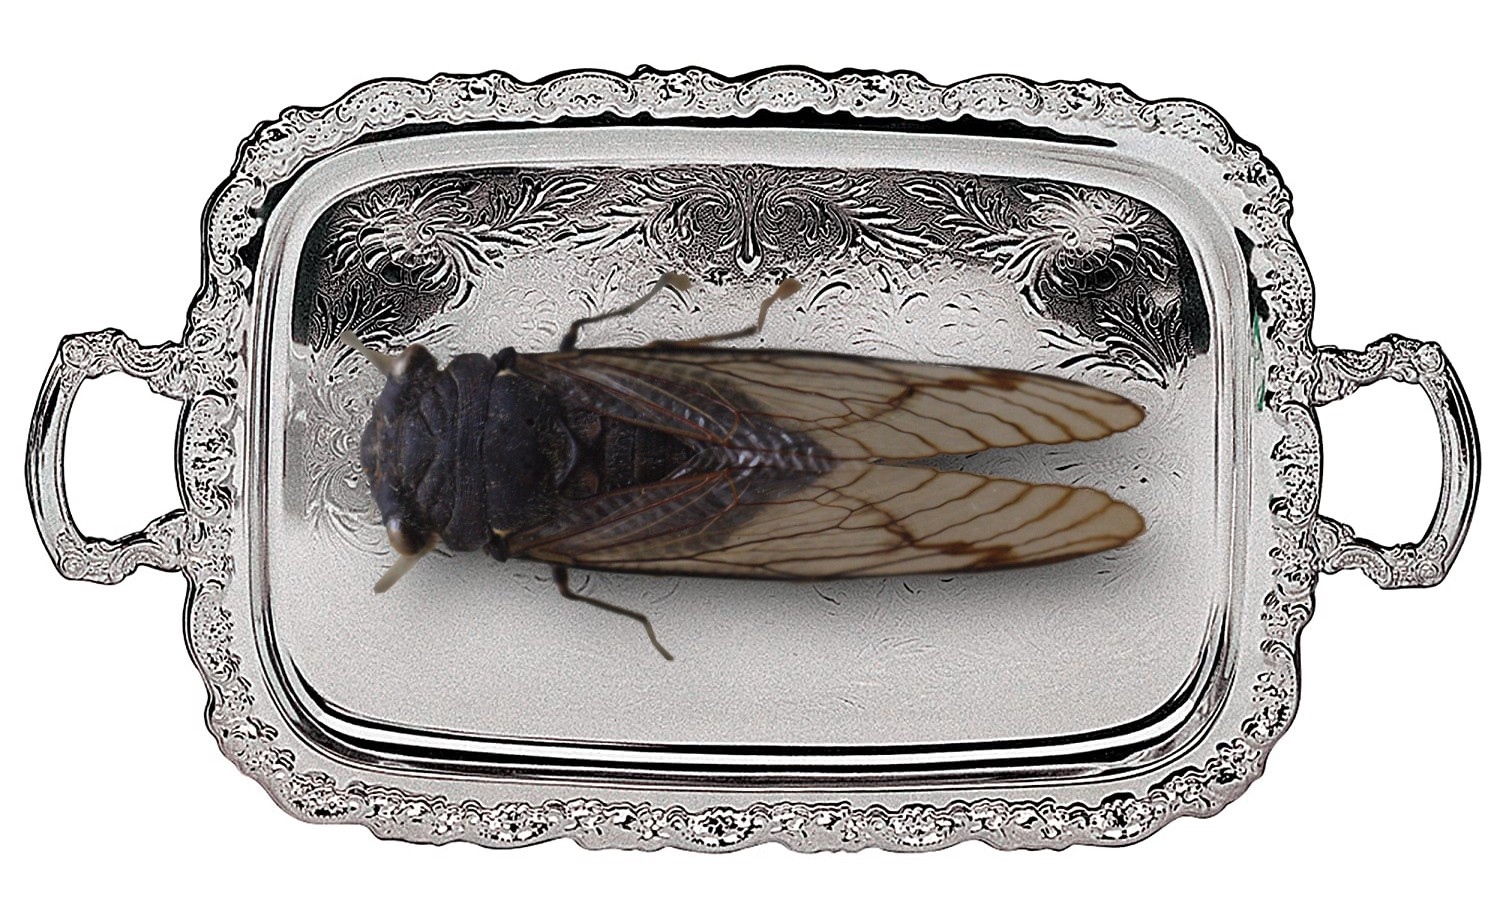 A giant cicada on a silver serving-tray. Image: Toby Hudson (modified) https://commons.wikimedia.org/wiki/File:AustralianMuseum_cicada_specimen_11.JPG CC BY-SA: https://creativecommons.org/licenses/by-sa/3.0/au/deed.en